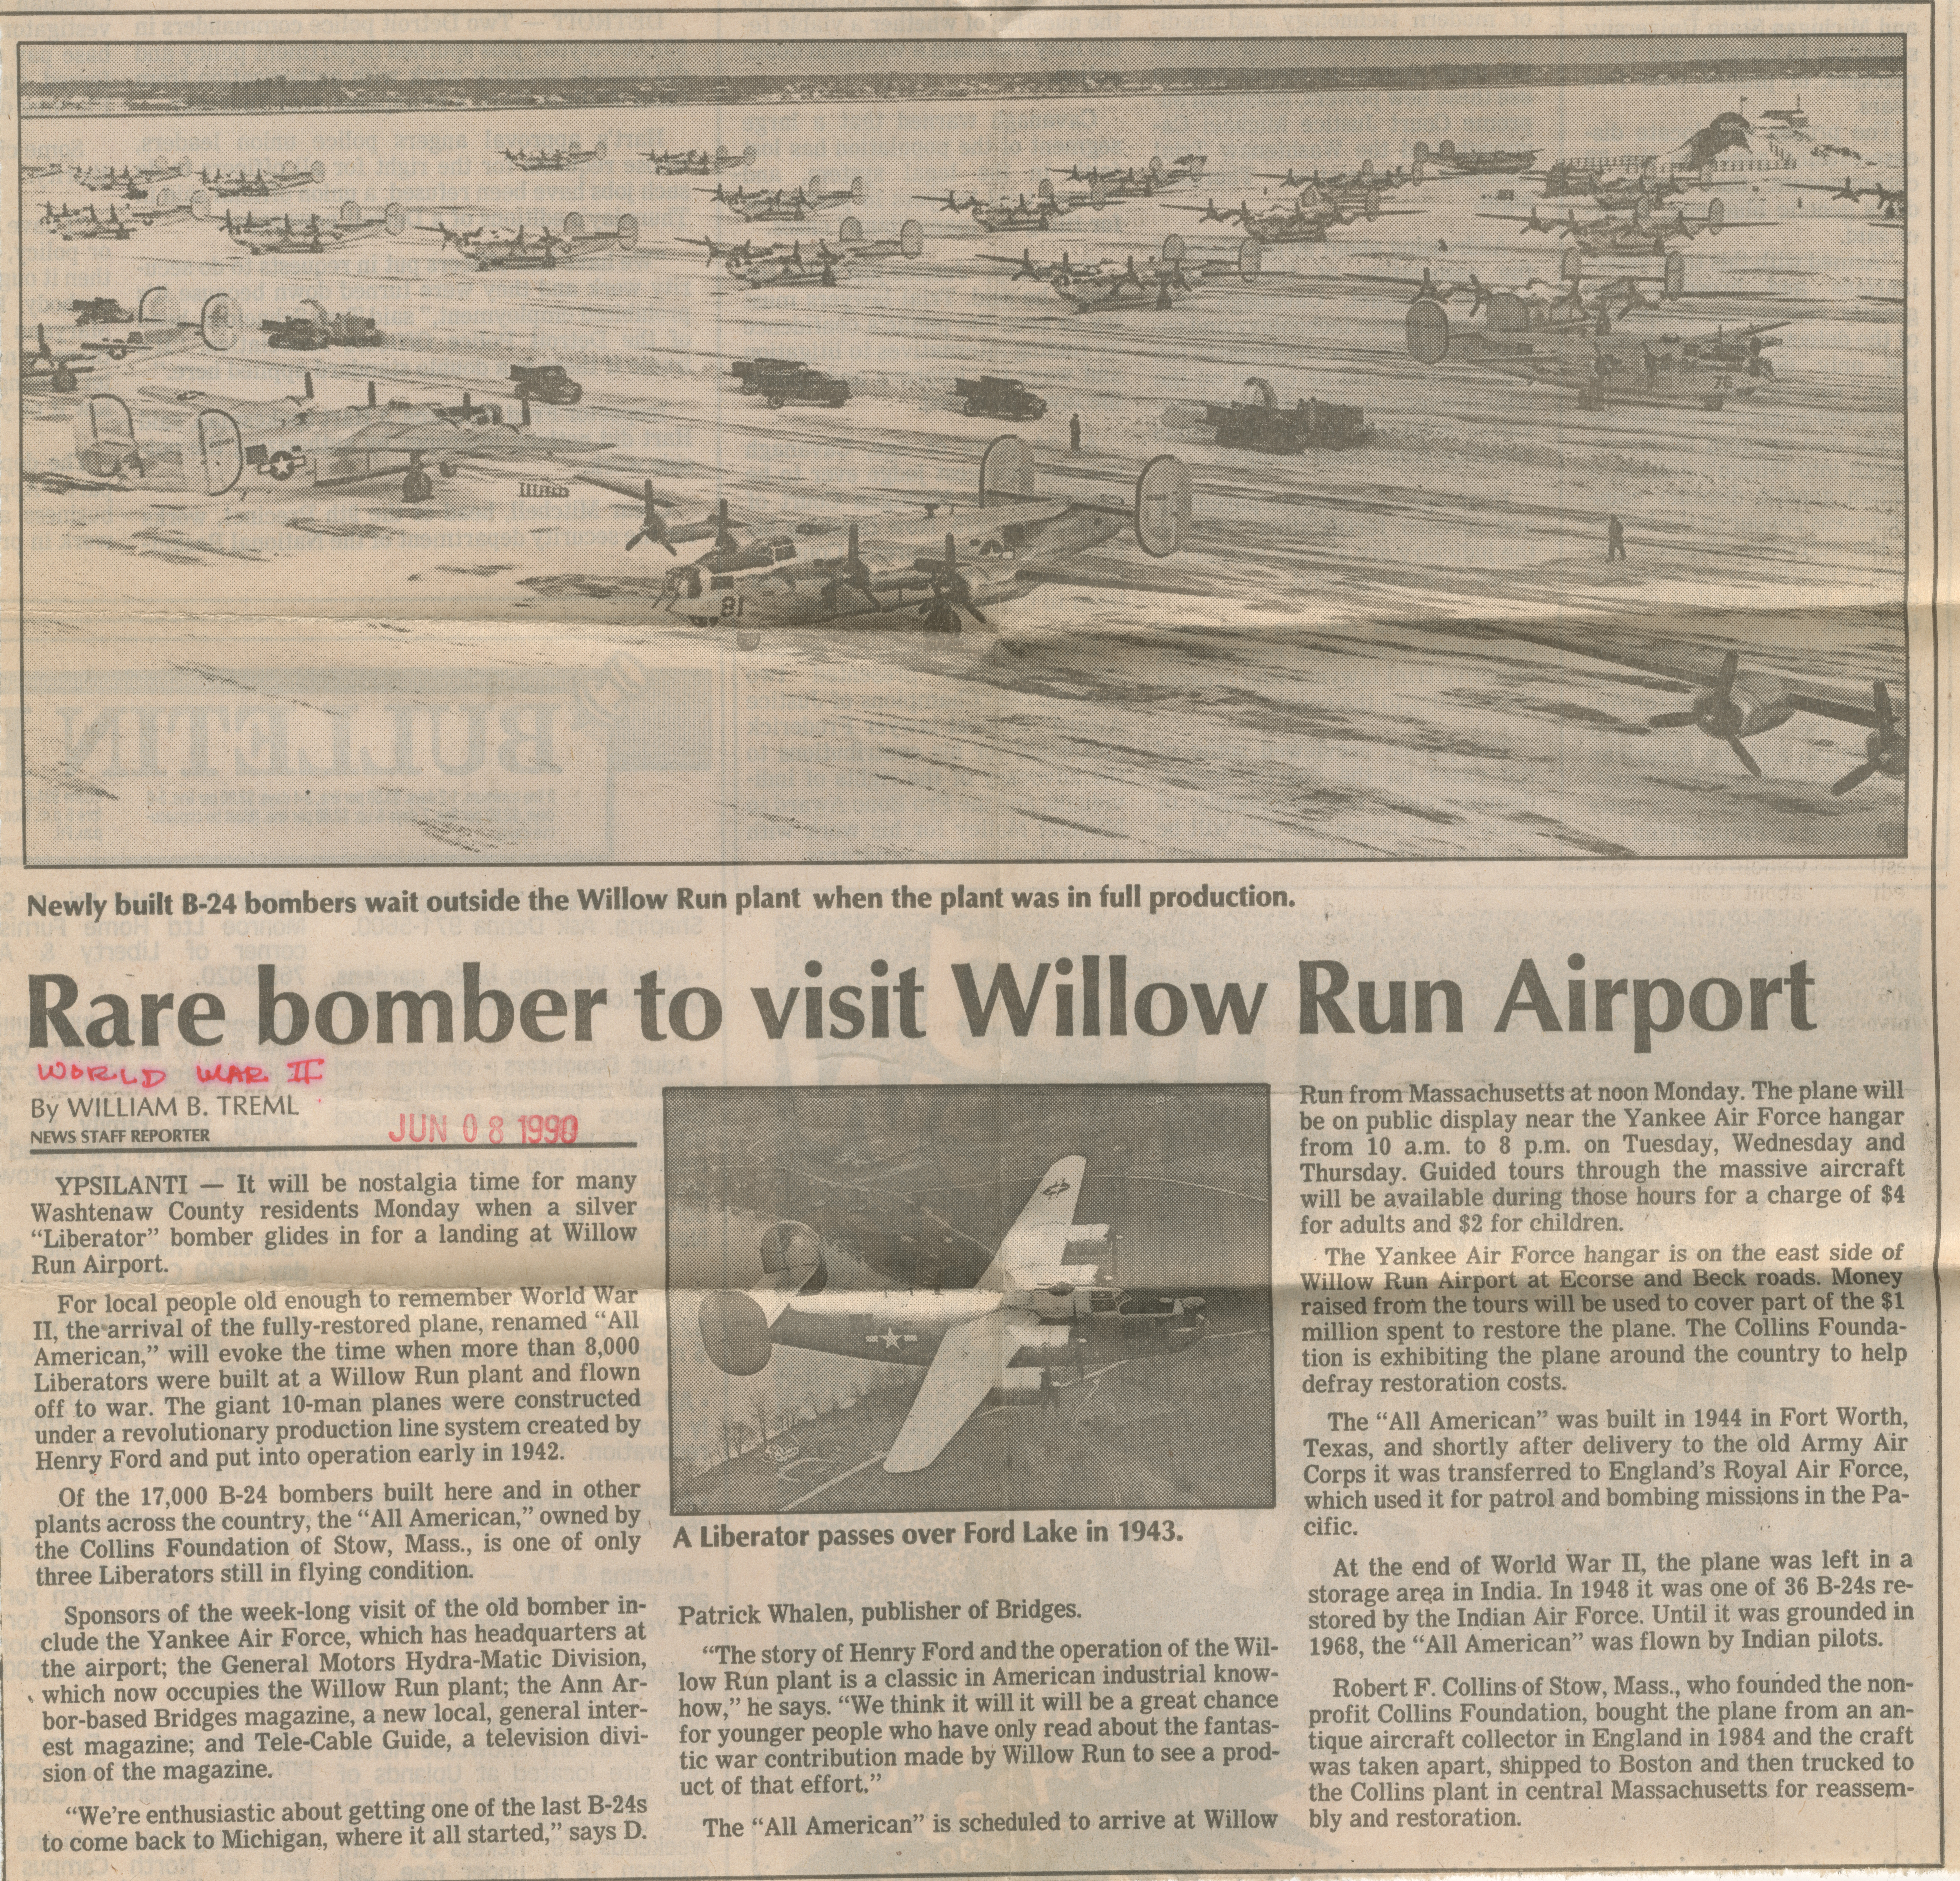 Rare bomber to visit Willow Run Airport image